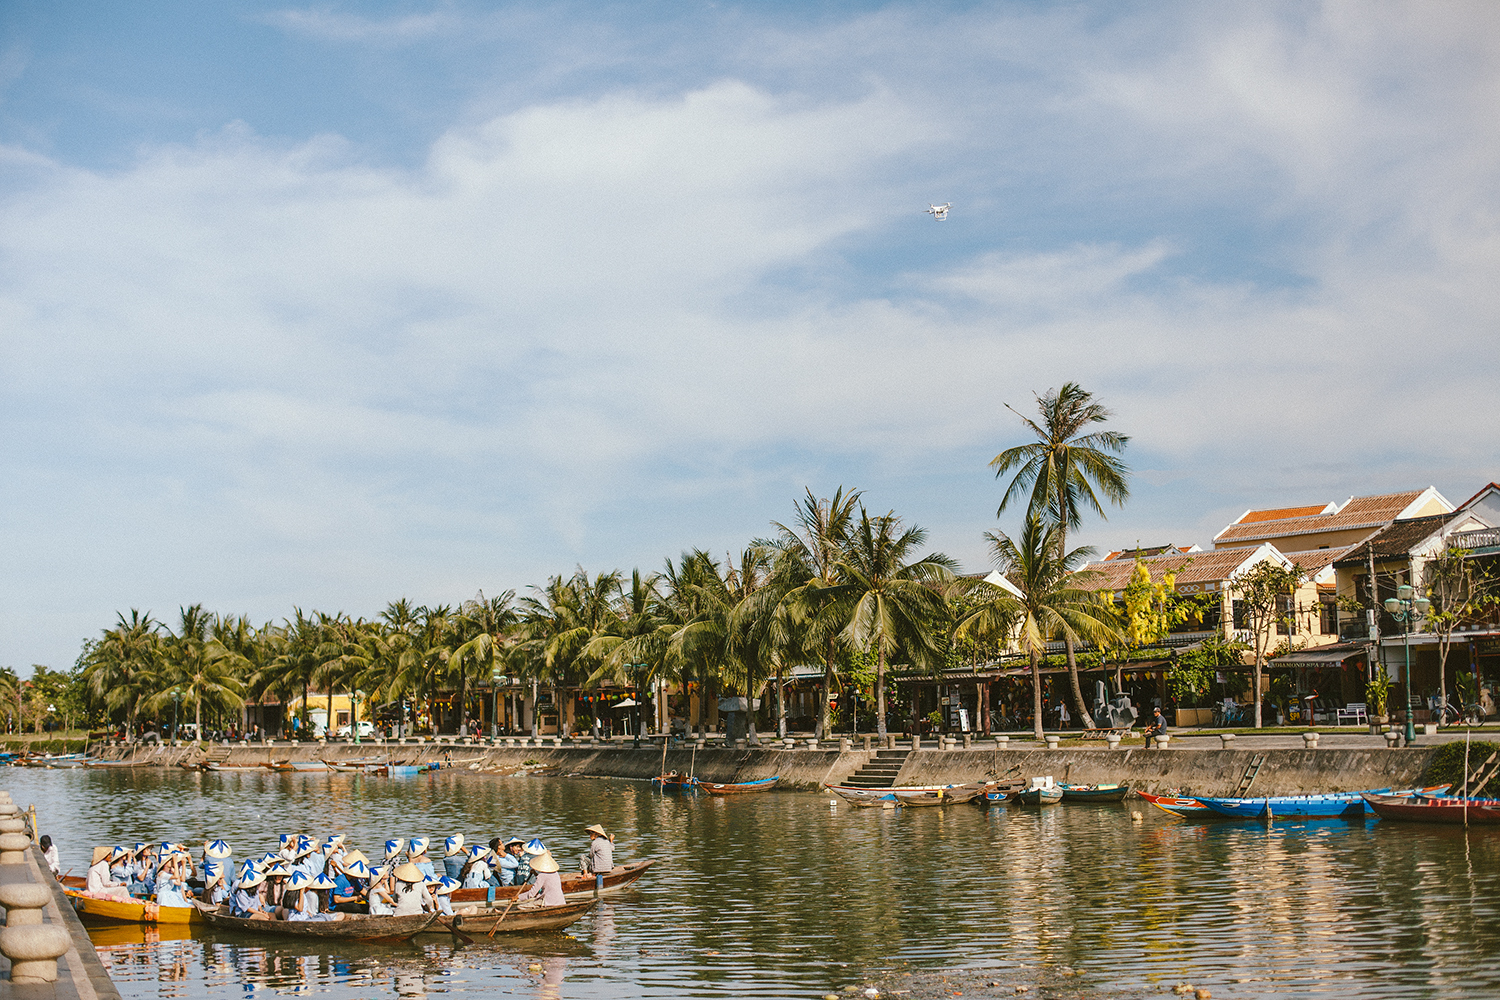 7. Hoi An,Vietnam - The beautifully preserved old town – we felt like we were taken back in time to the 1800's.Trying our hand at some local farming and fishing techniques with Hoi An Ecotourism.Seeing traditional Vietnamese performances free of charge in the old town.